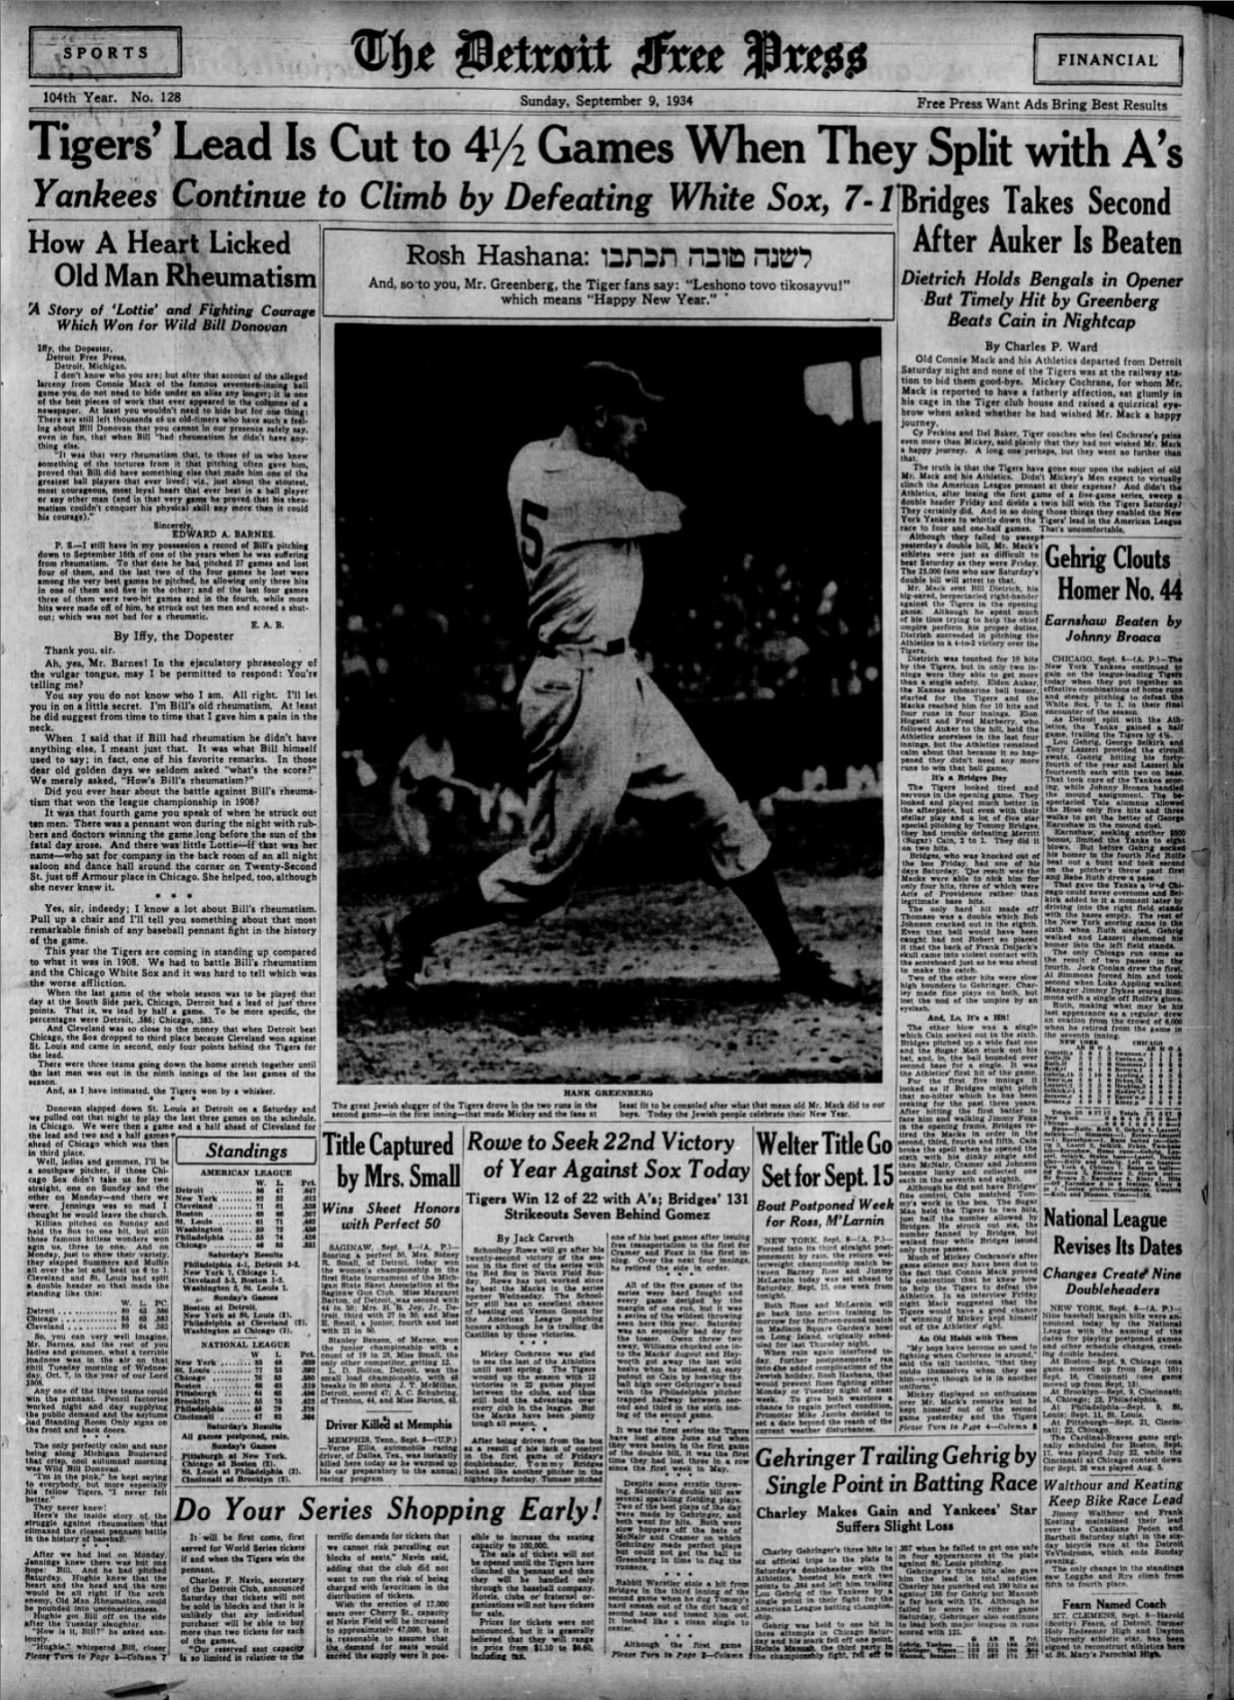 Hank Greenberg Caught Between Baseball And His Religion Only A Game